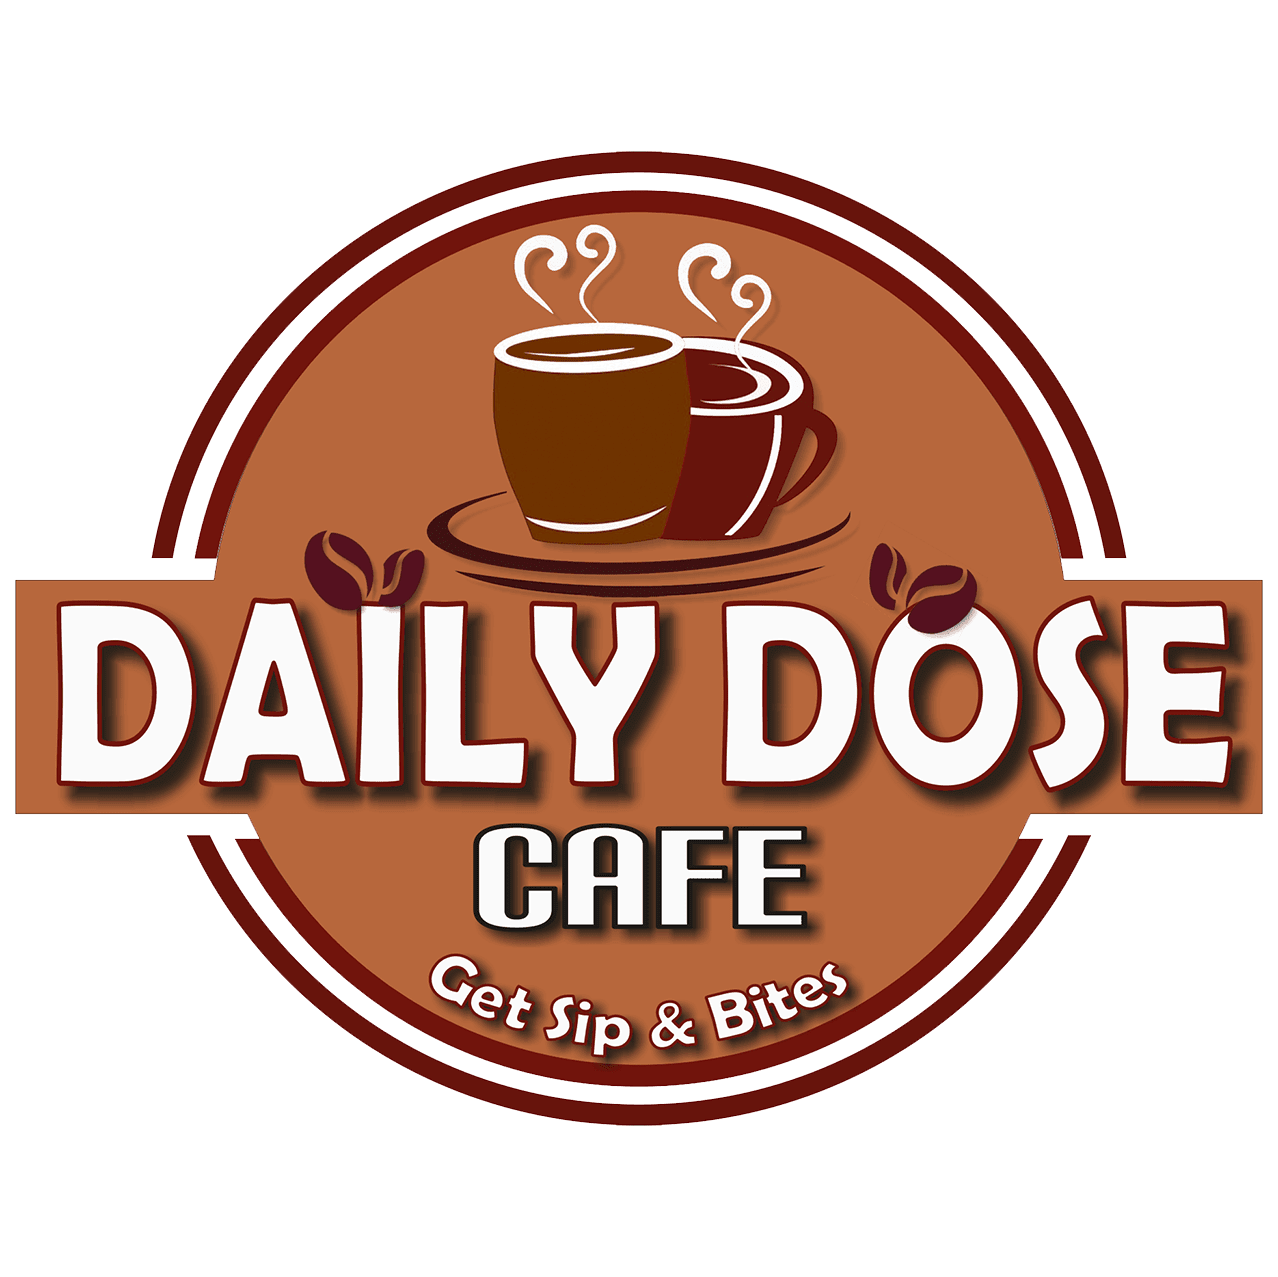 Daily Dose Cafe